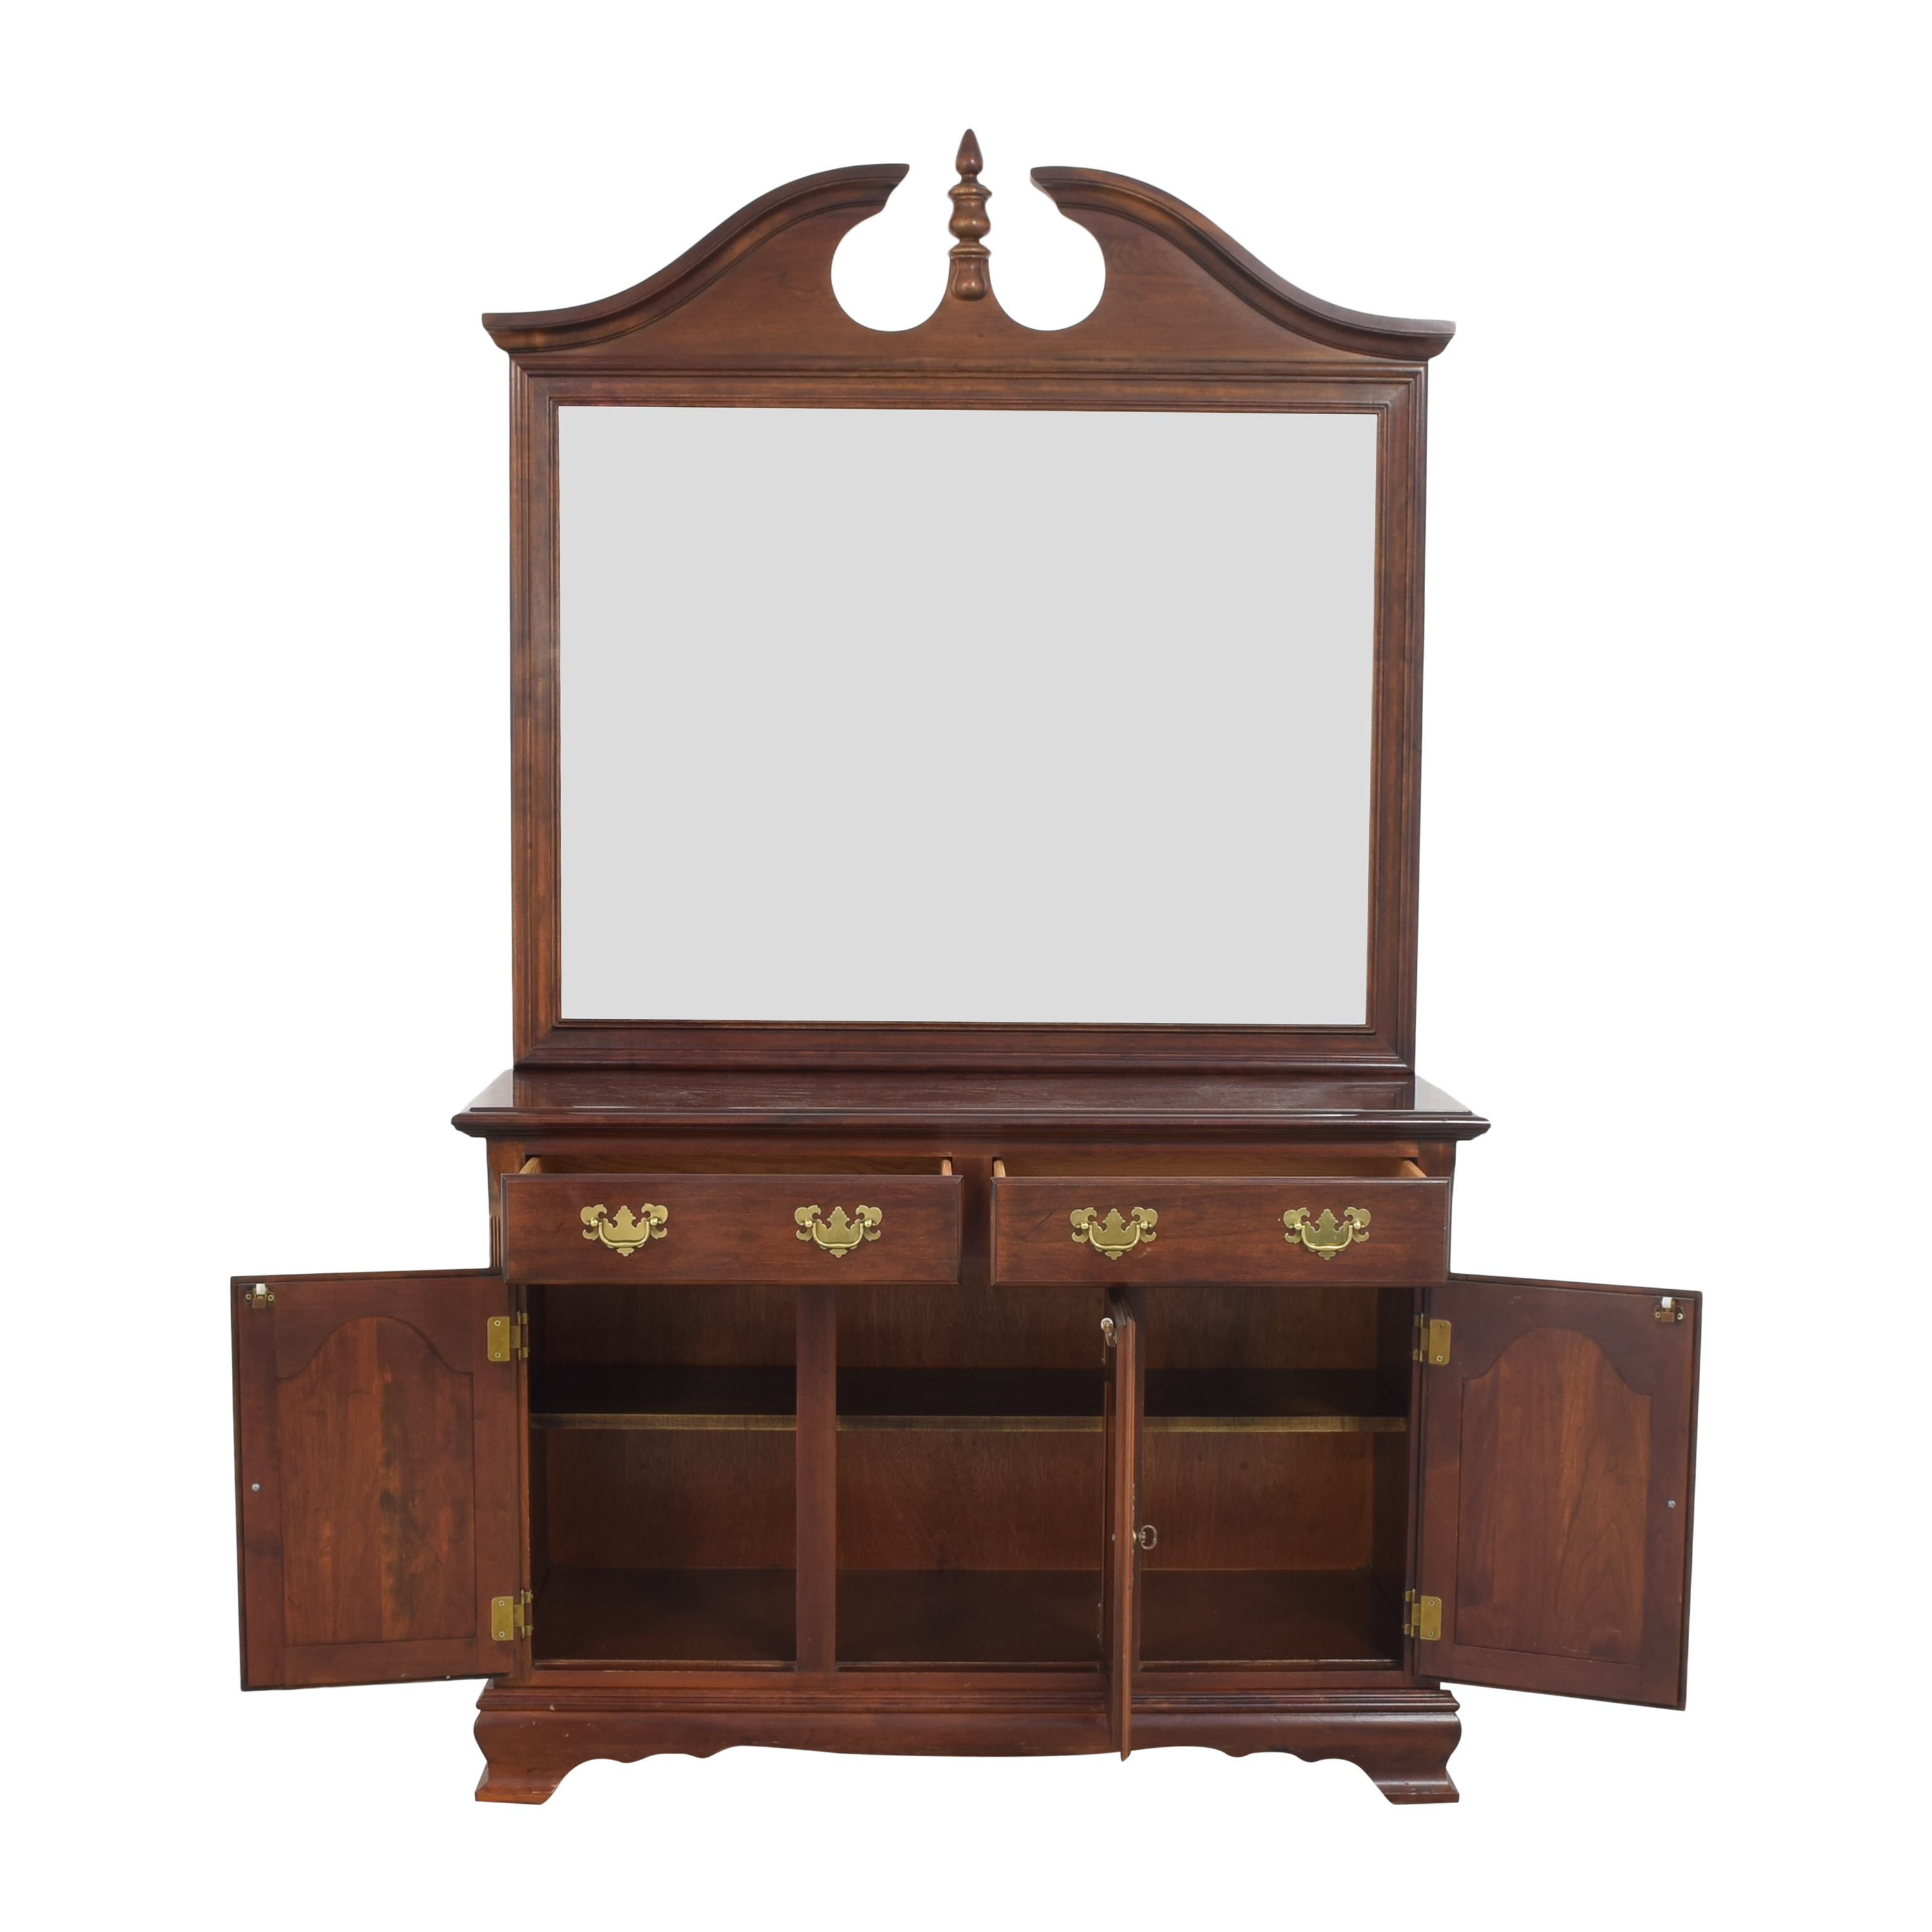 Drexel Heritage Drexel Heritage Chippendale-Style Buffet with Mirror discount